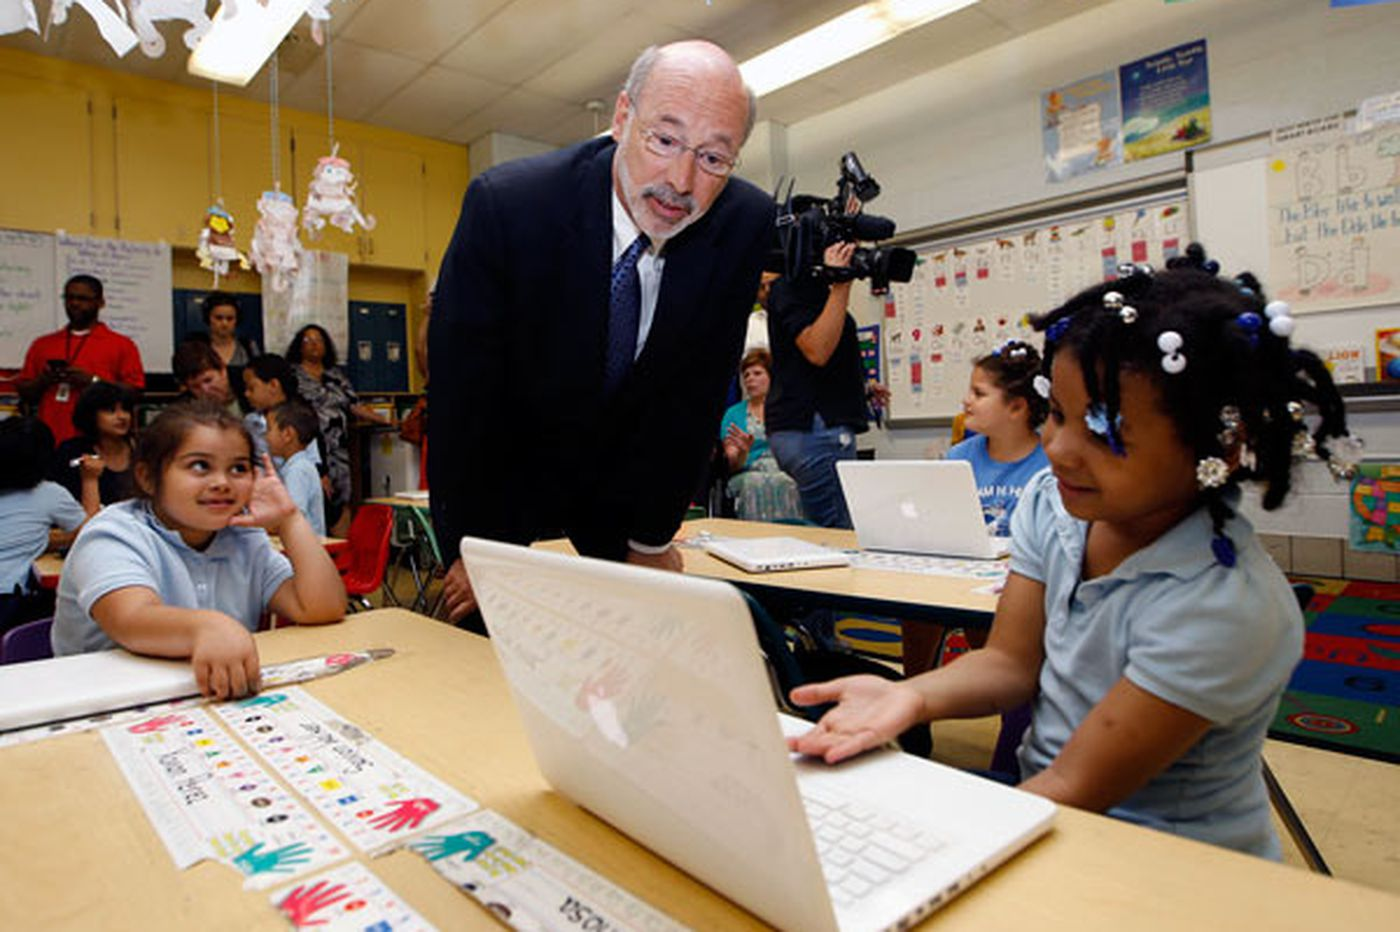 In North Philly, Wolf frames school funding as a statewide issue